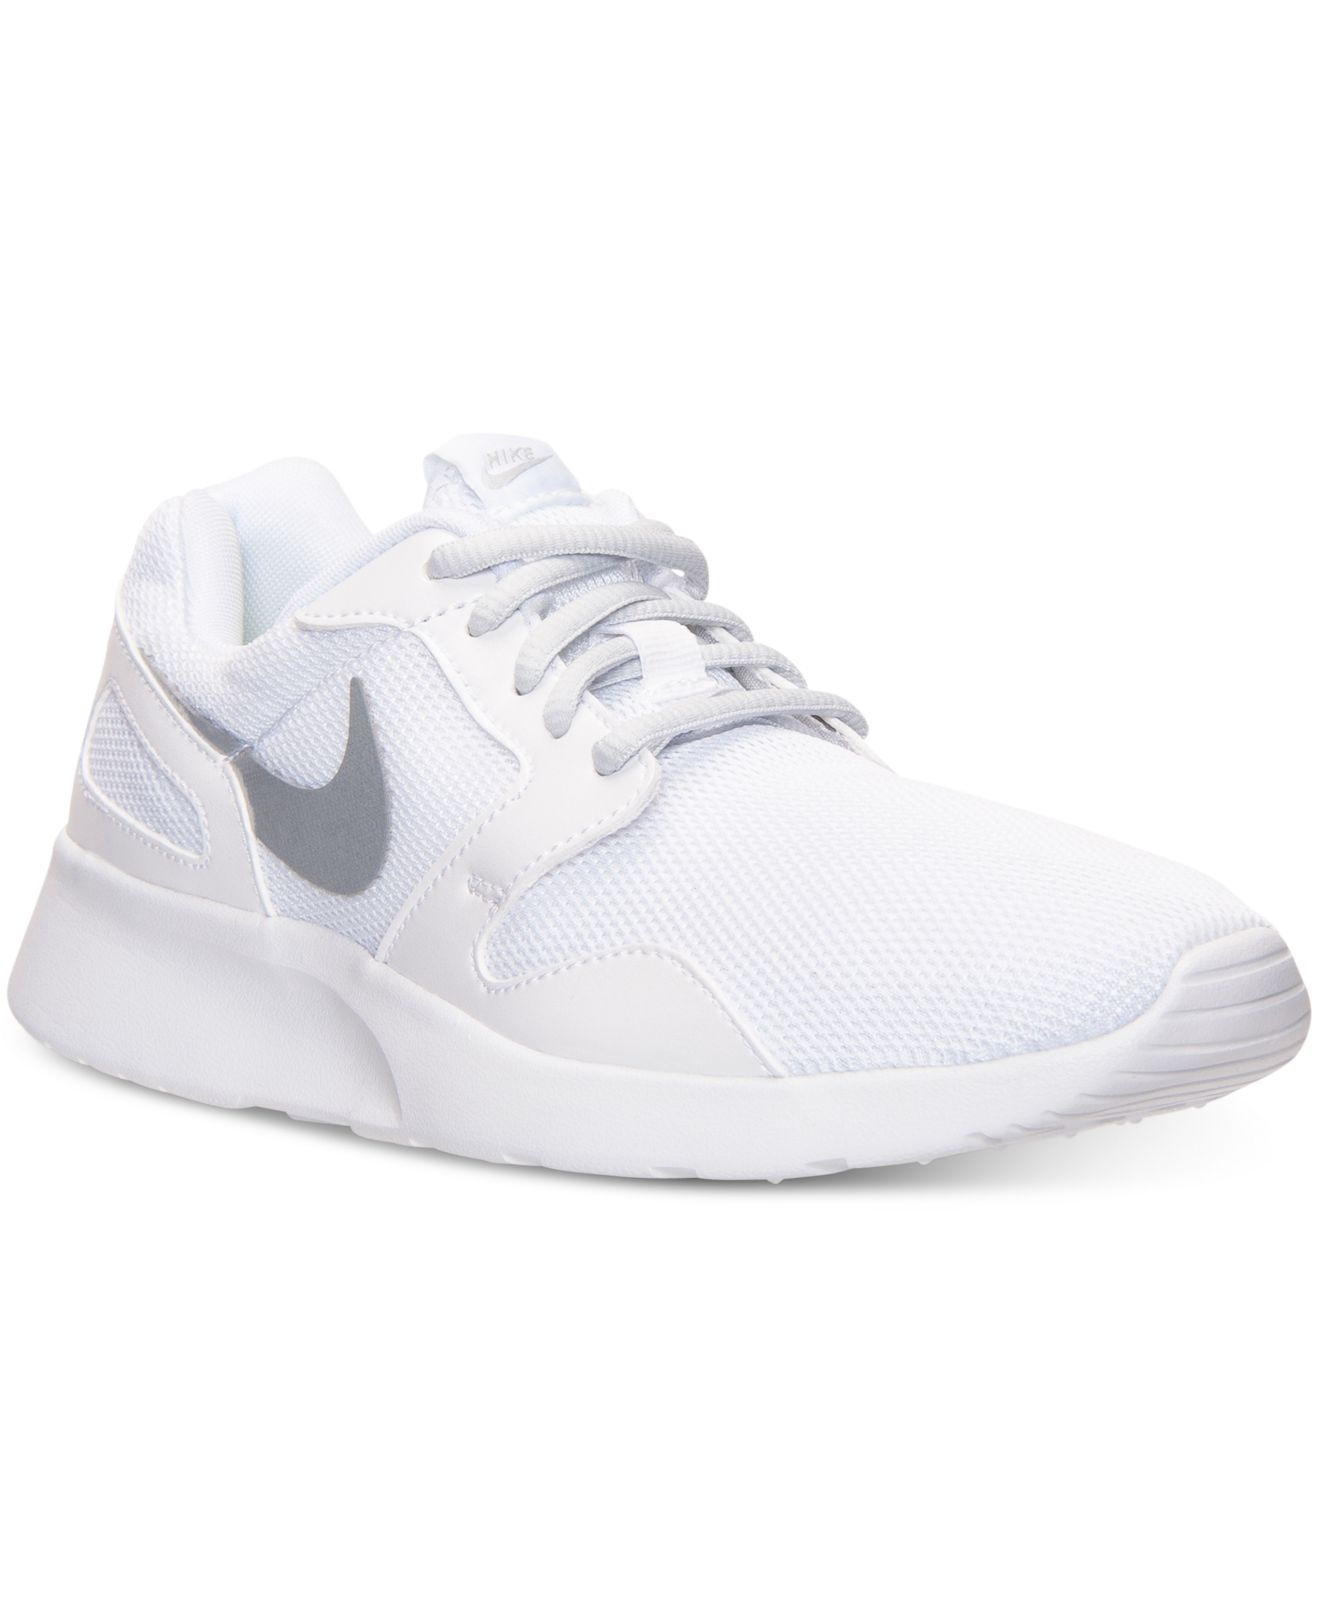 new product bb2e5 7d3a0 Nike Women s Kaishi Casual Sneakers From Finish Line in White - Lyst